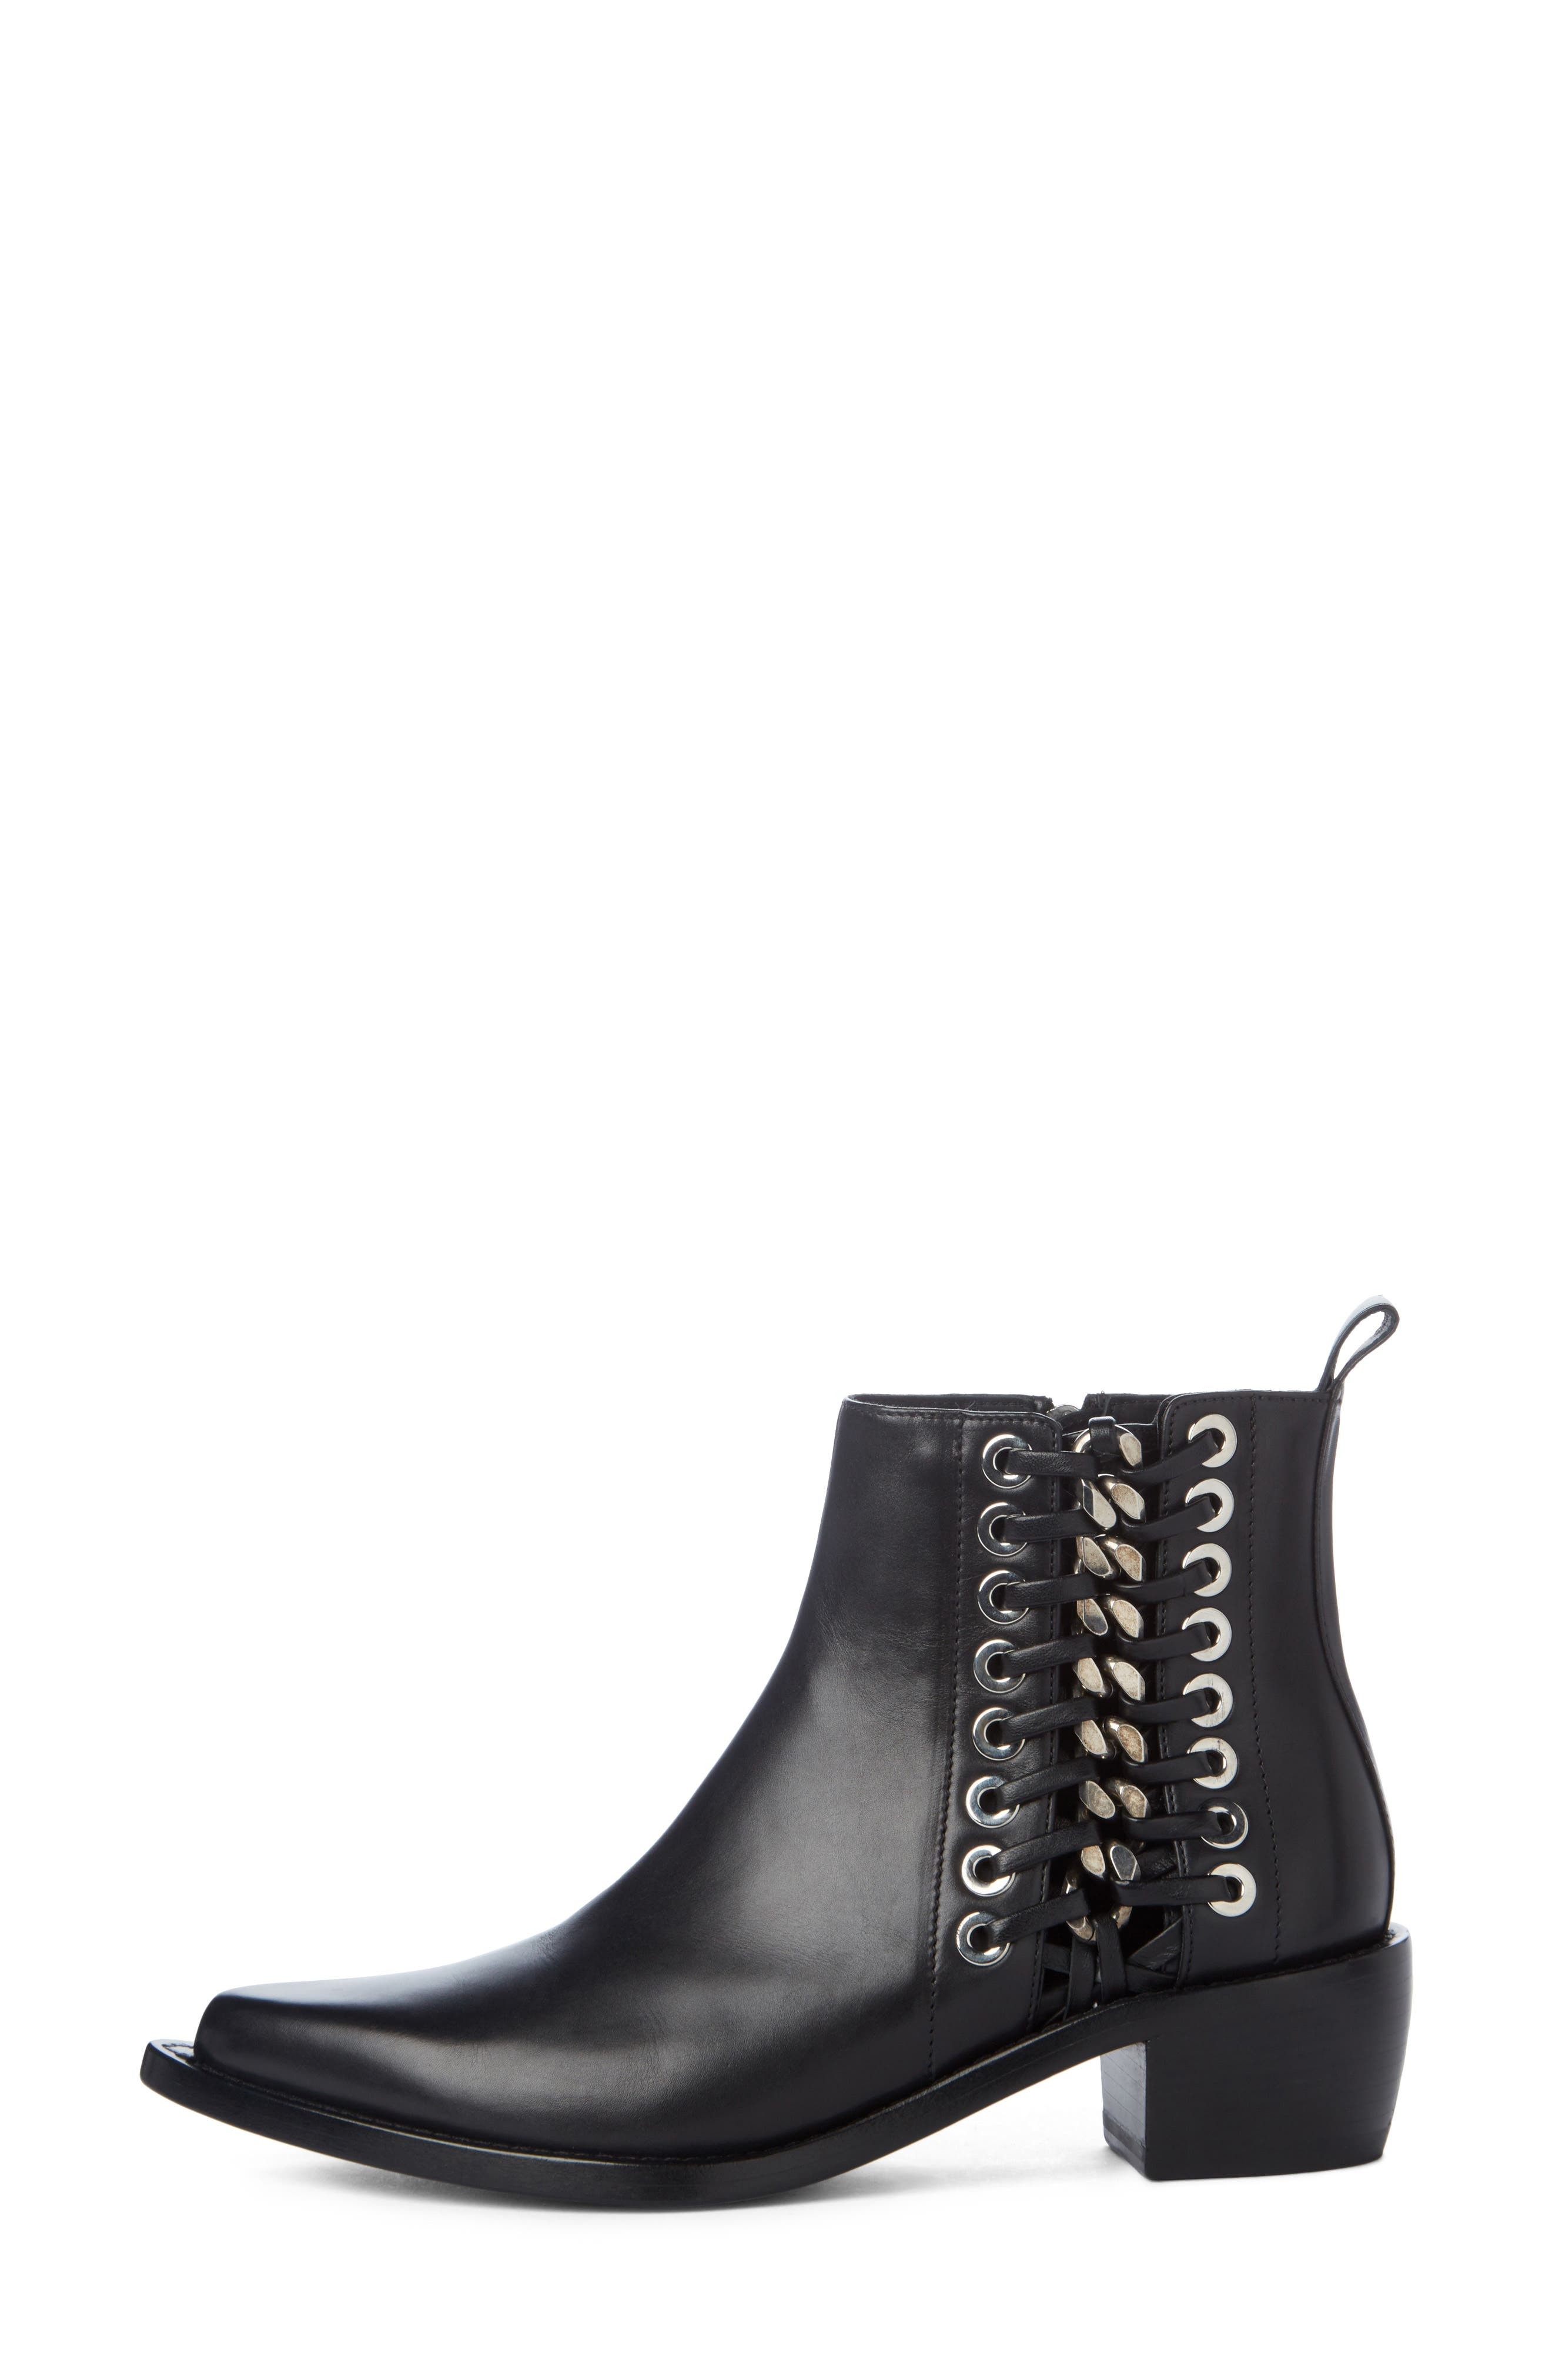 Braided Chain Boot,                             Alternate thumbnail 3, color,                             Black/ Silver